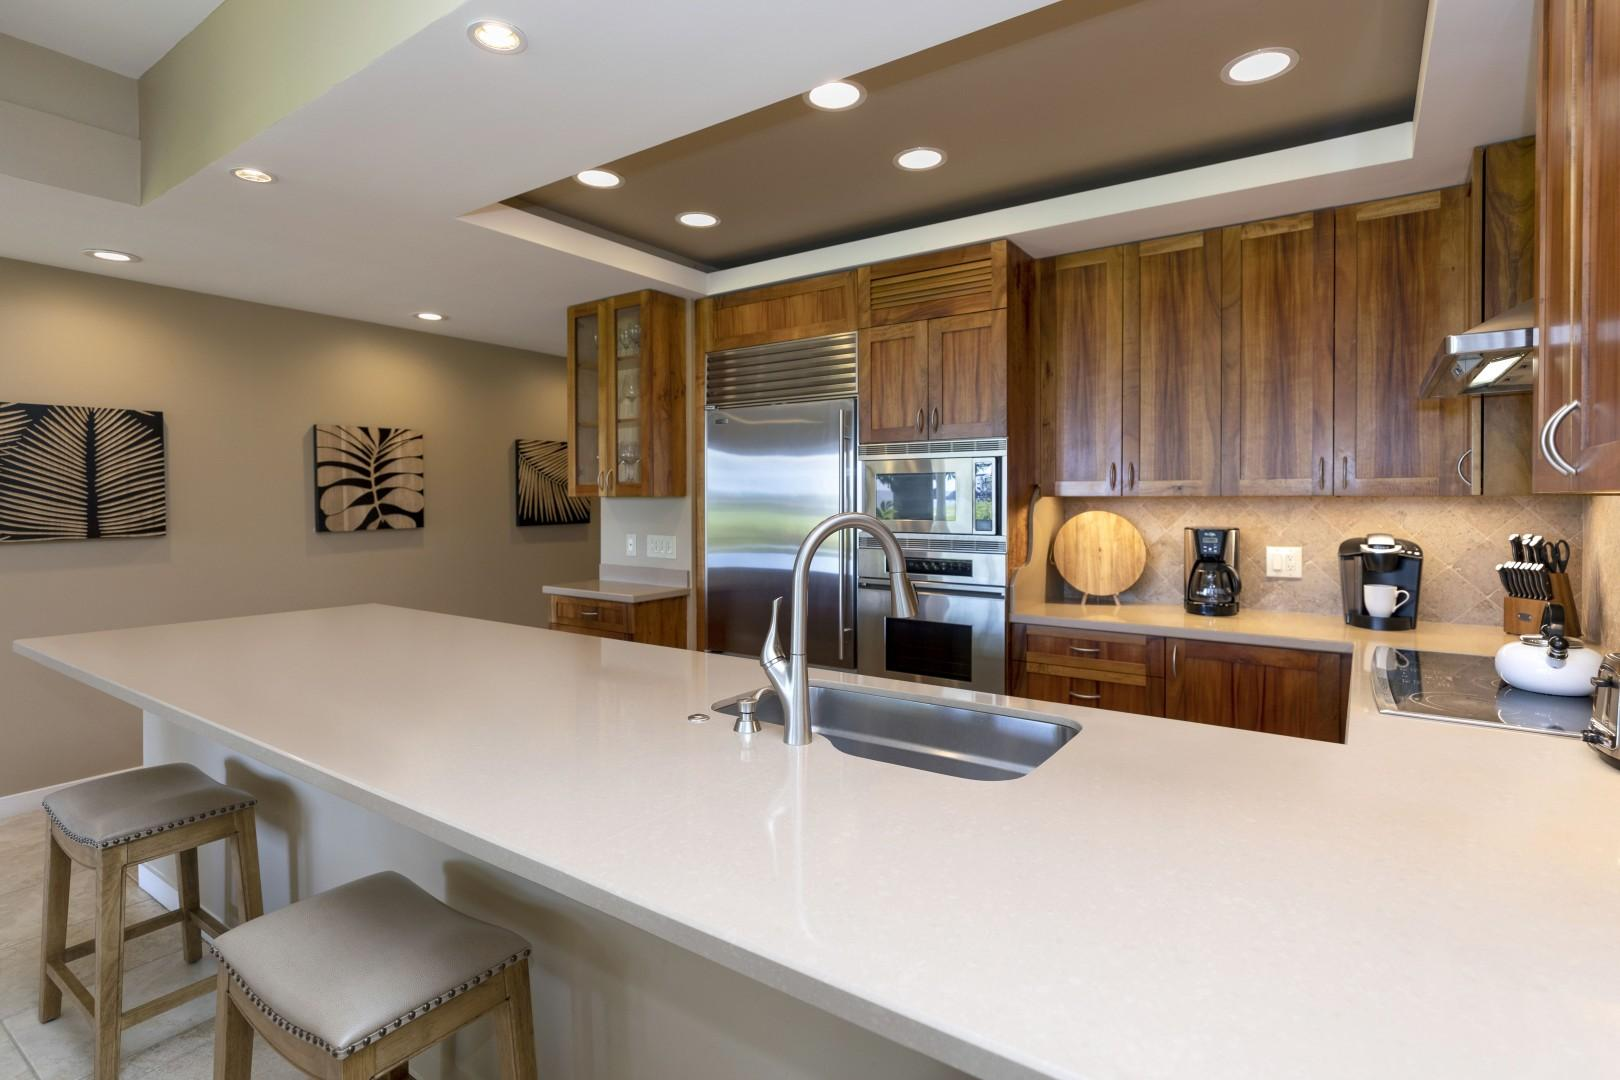 Lots of counter top space to utilize in the kitchen.